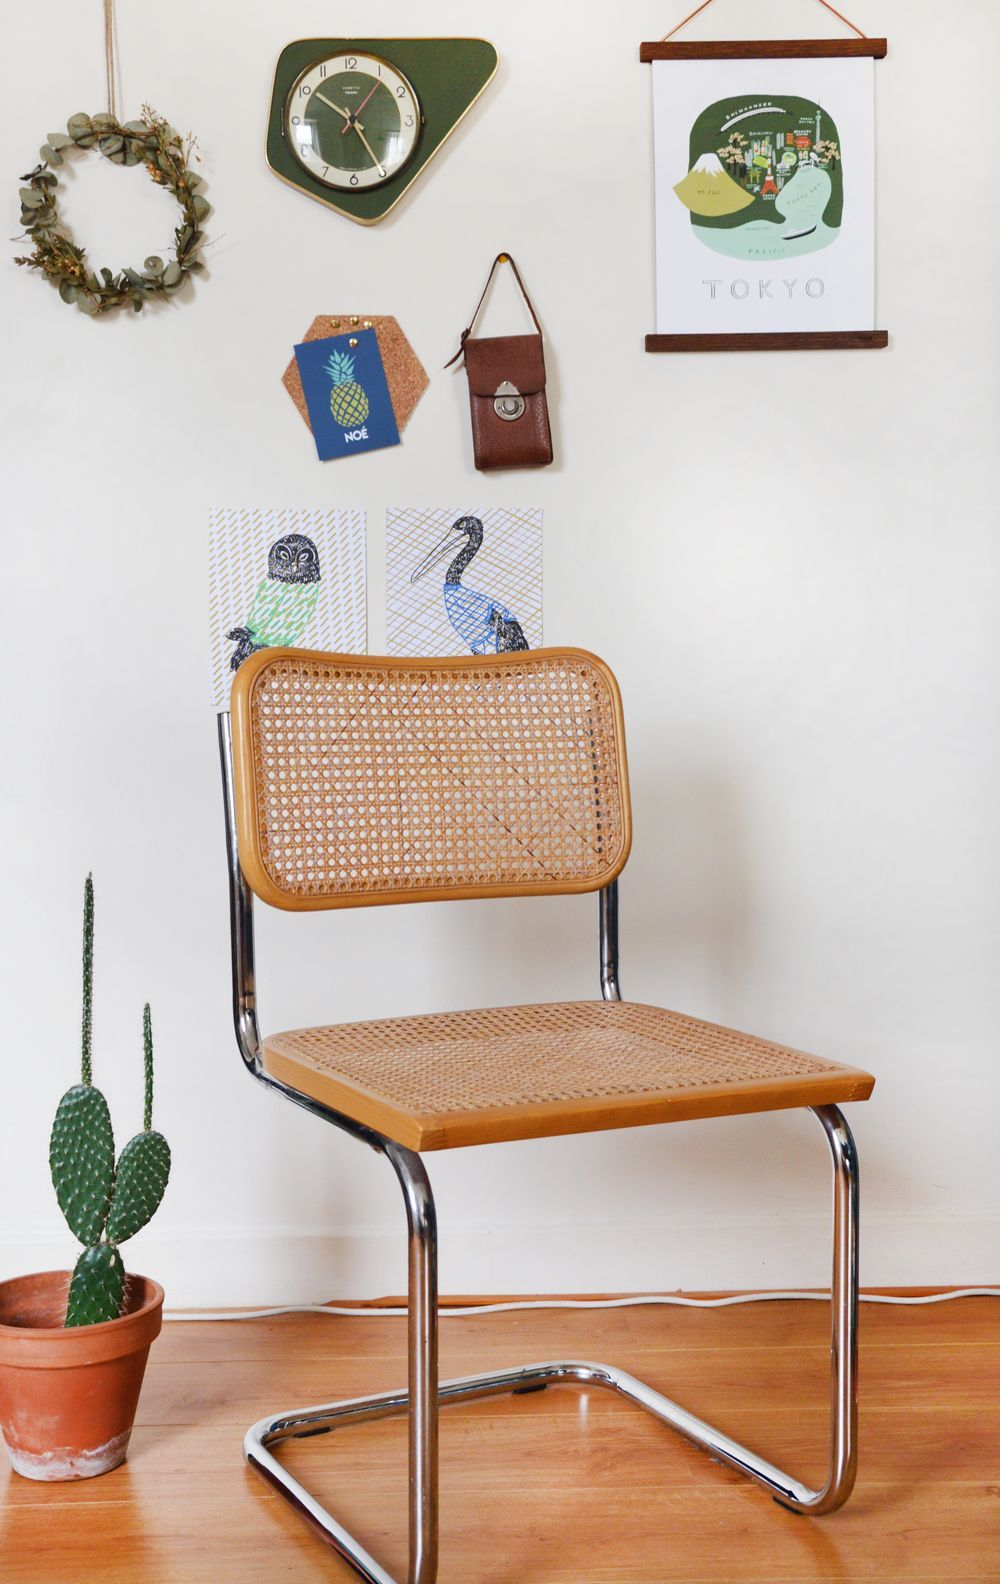 Marcel Breuer Cesca Cane Chair In Natural Chaise Cannee Chaircomedores Boho Dining Chairs Used Office Chairs Cheap Chairs